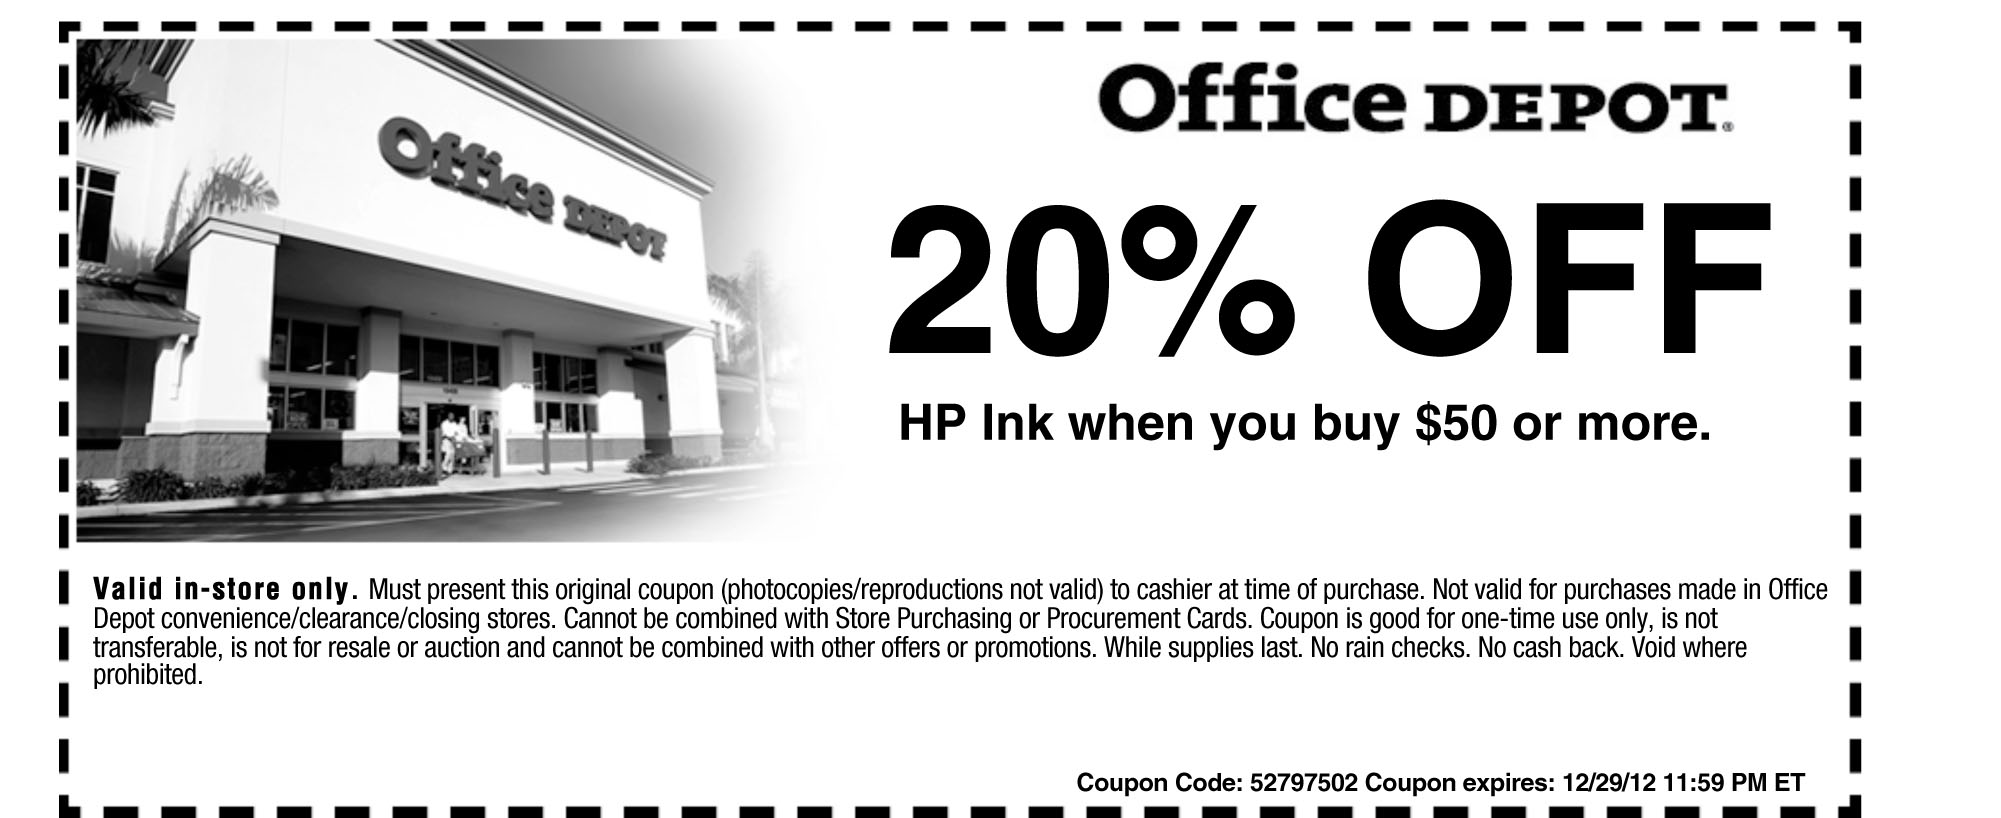 photo regarding Epson Ink Coupon Printable called Place of work depot 20 p.c off coupon - Laptop or computer 13.3